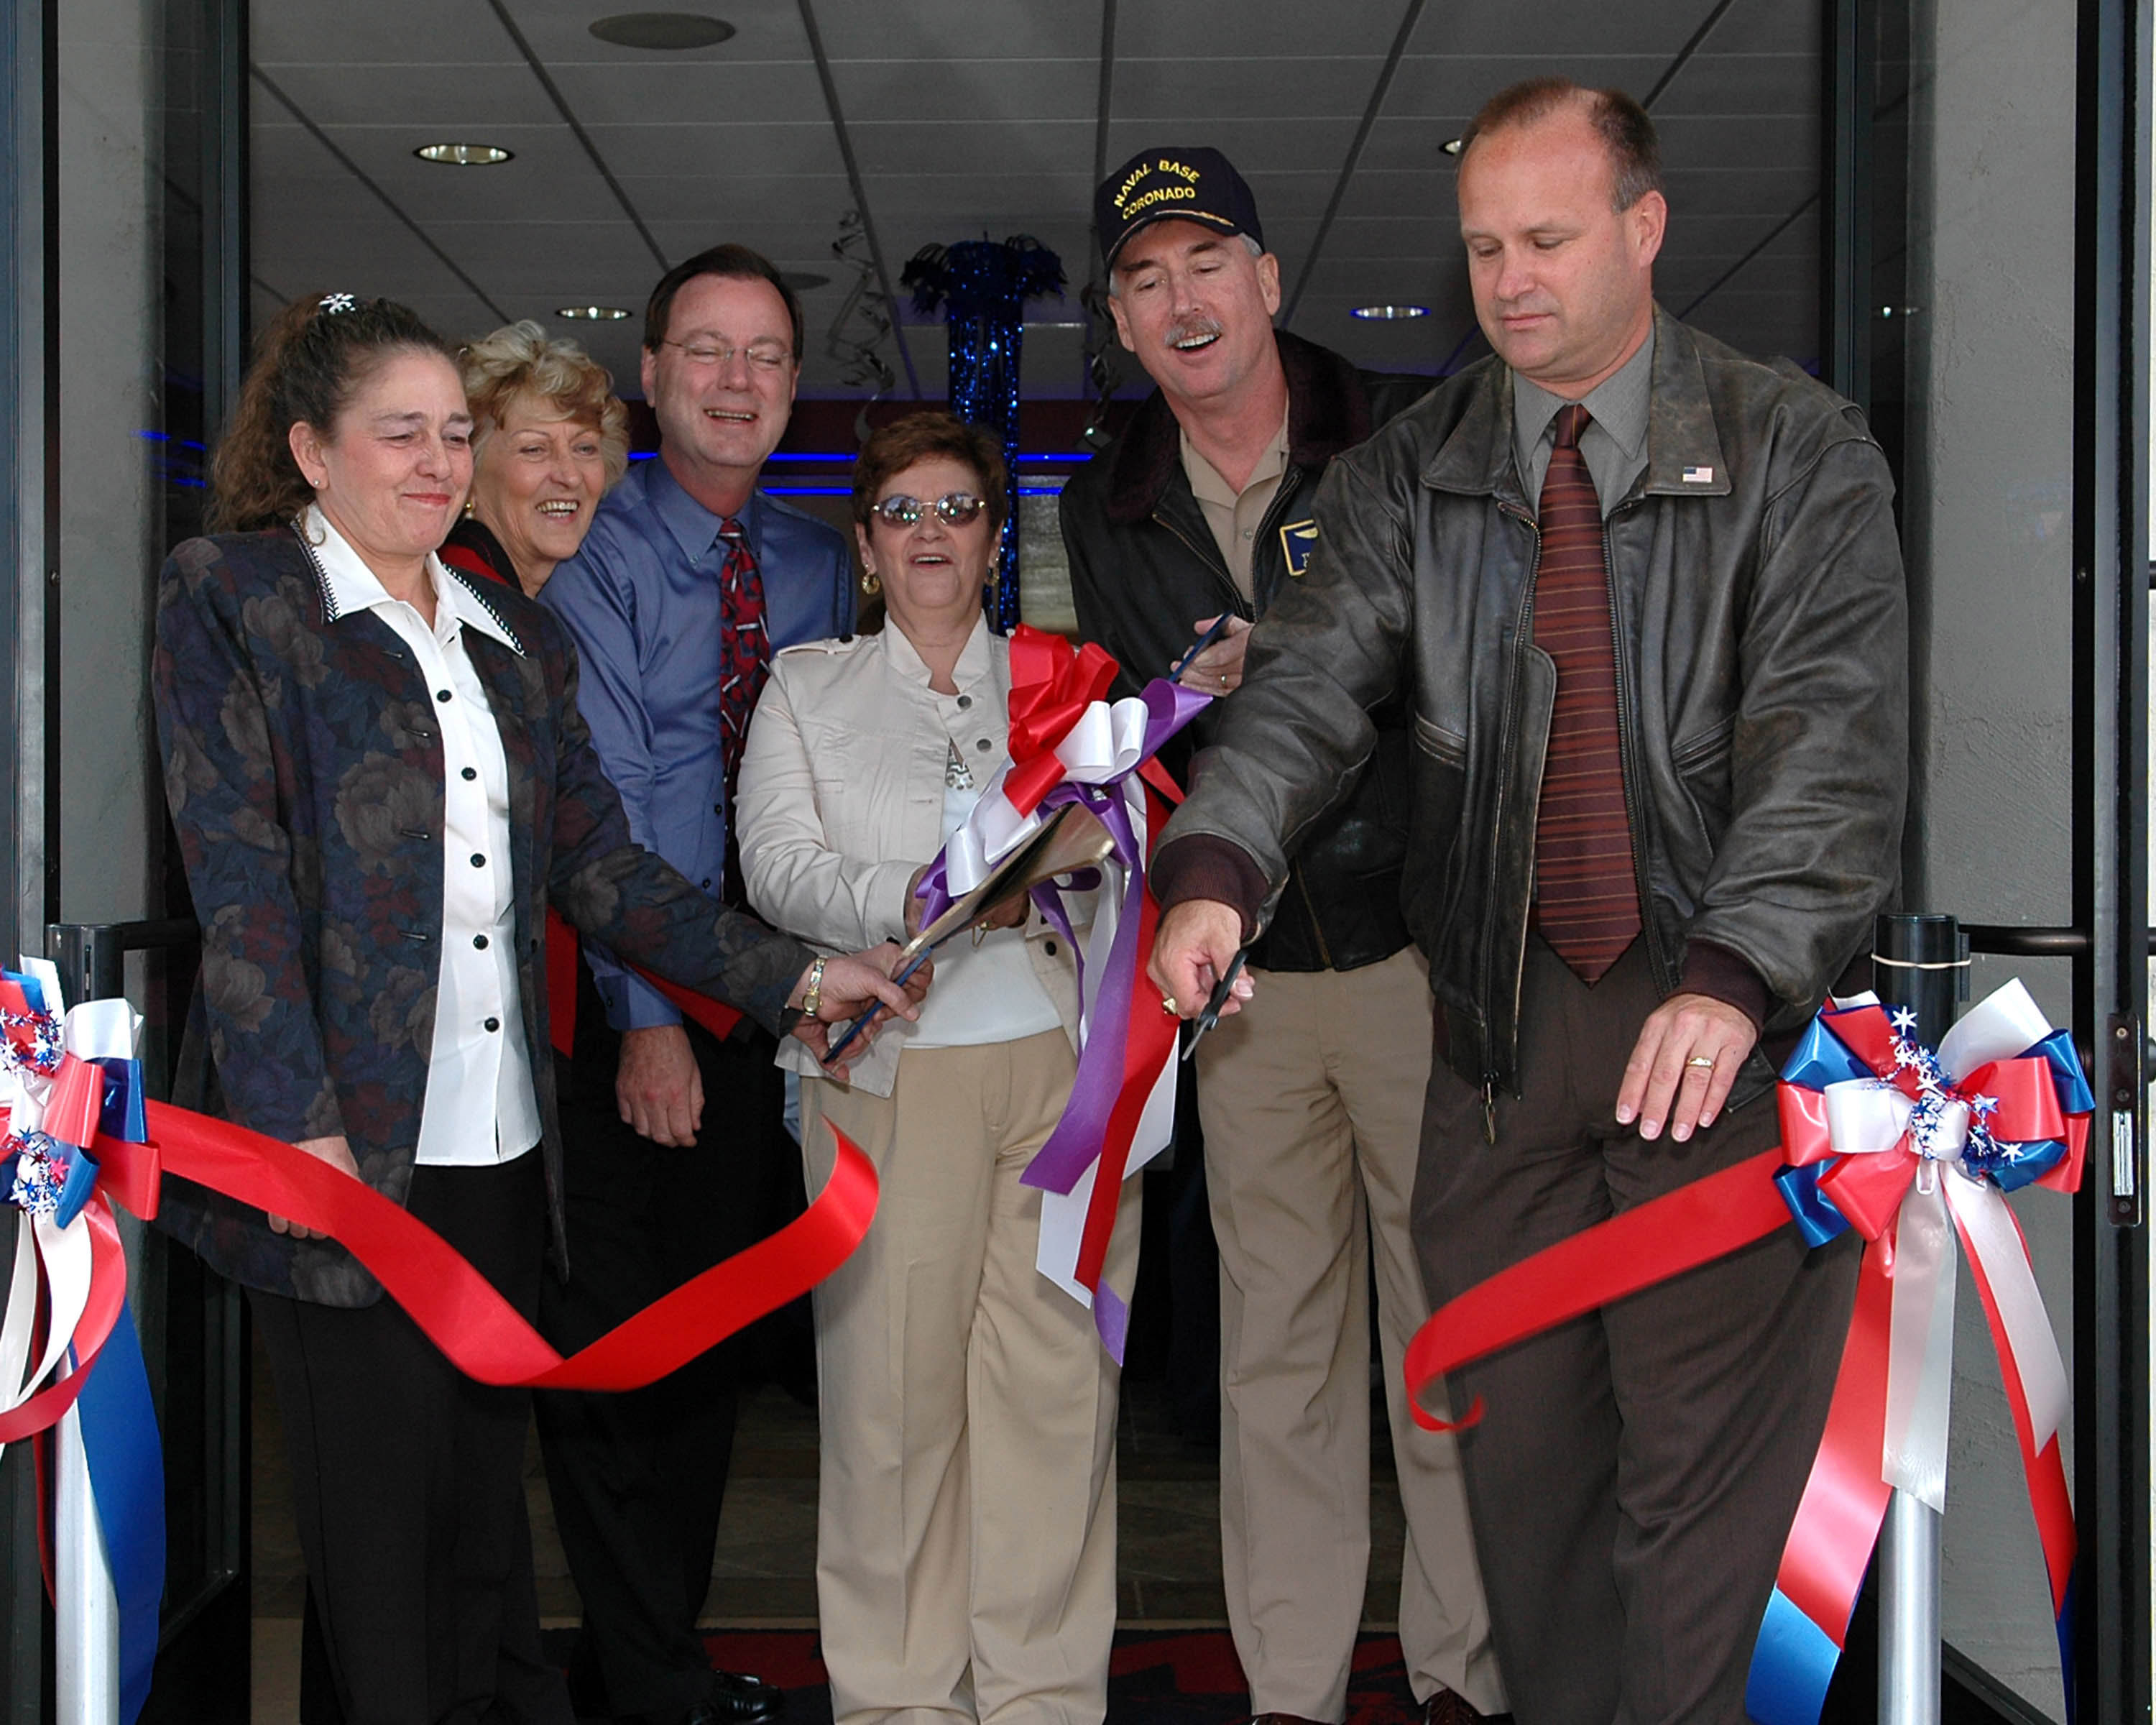 representatives reopen the doors on a newly renovated pizza parlor at a ribbon cutting ceremony following a two-month renovation project funded by M.jpg English: